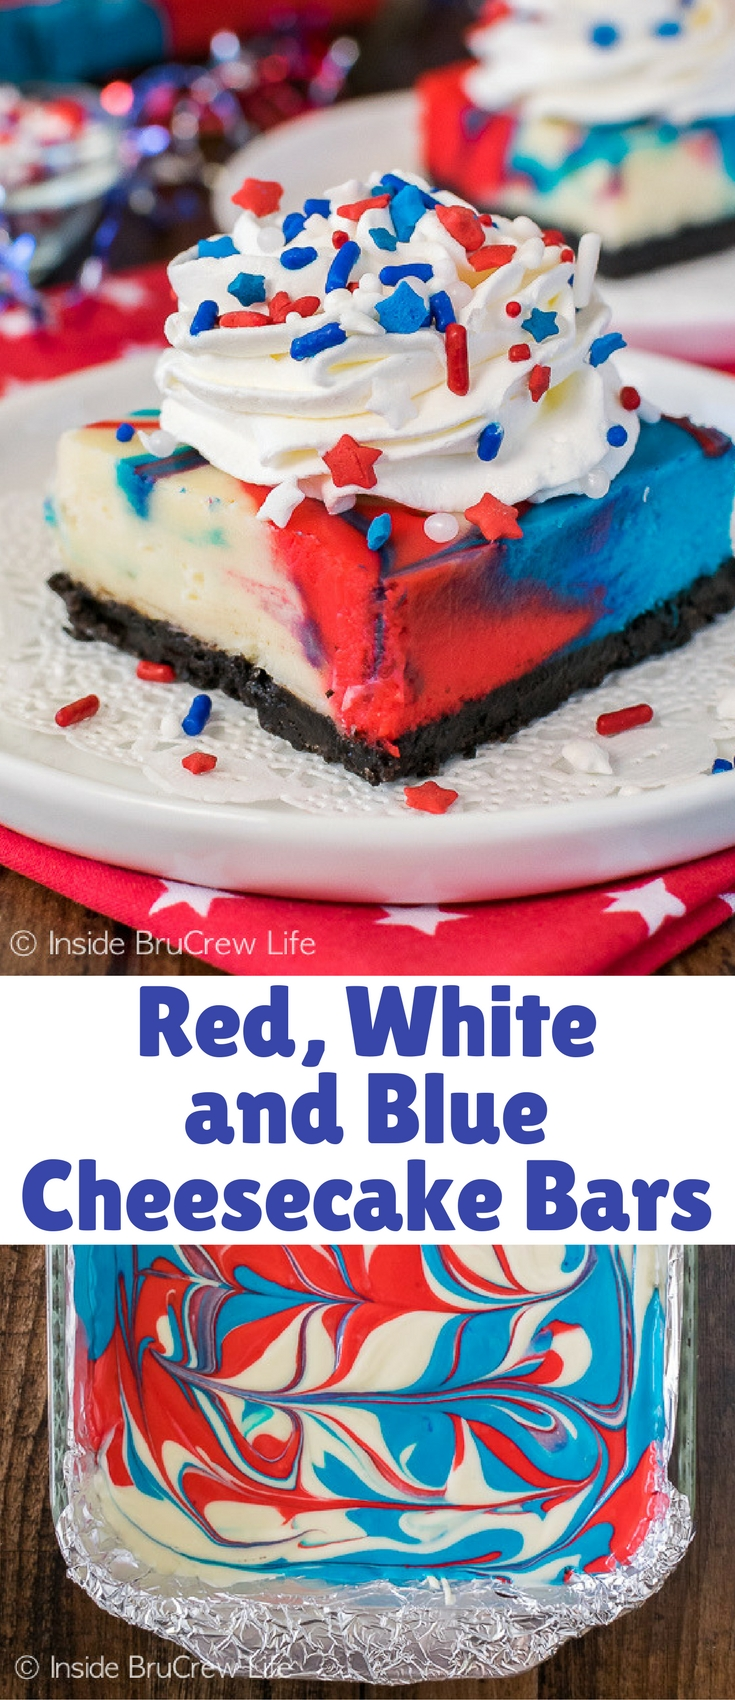 Swirls of colors make these Red, White and Blue Cheesecake Bars a fun dessert to share at holiday parties this summer. Brighten your Memorial Day and 4th of July picnics with this easy patriotic treat!